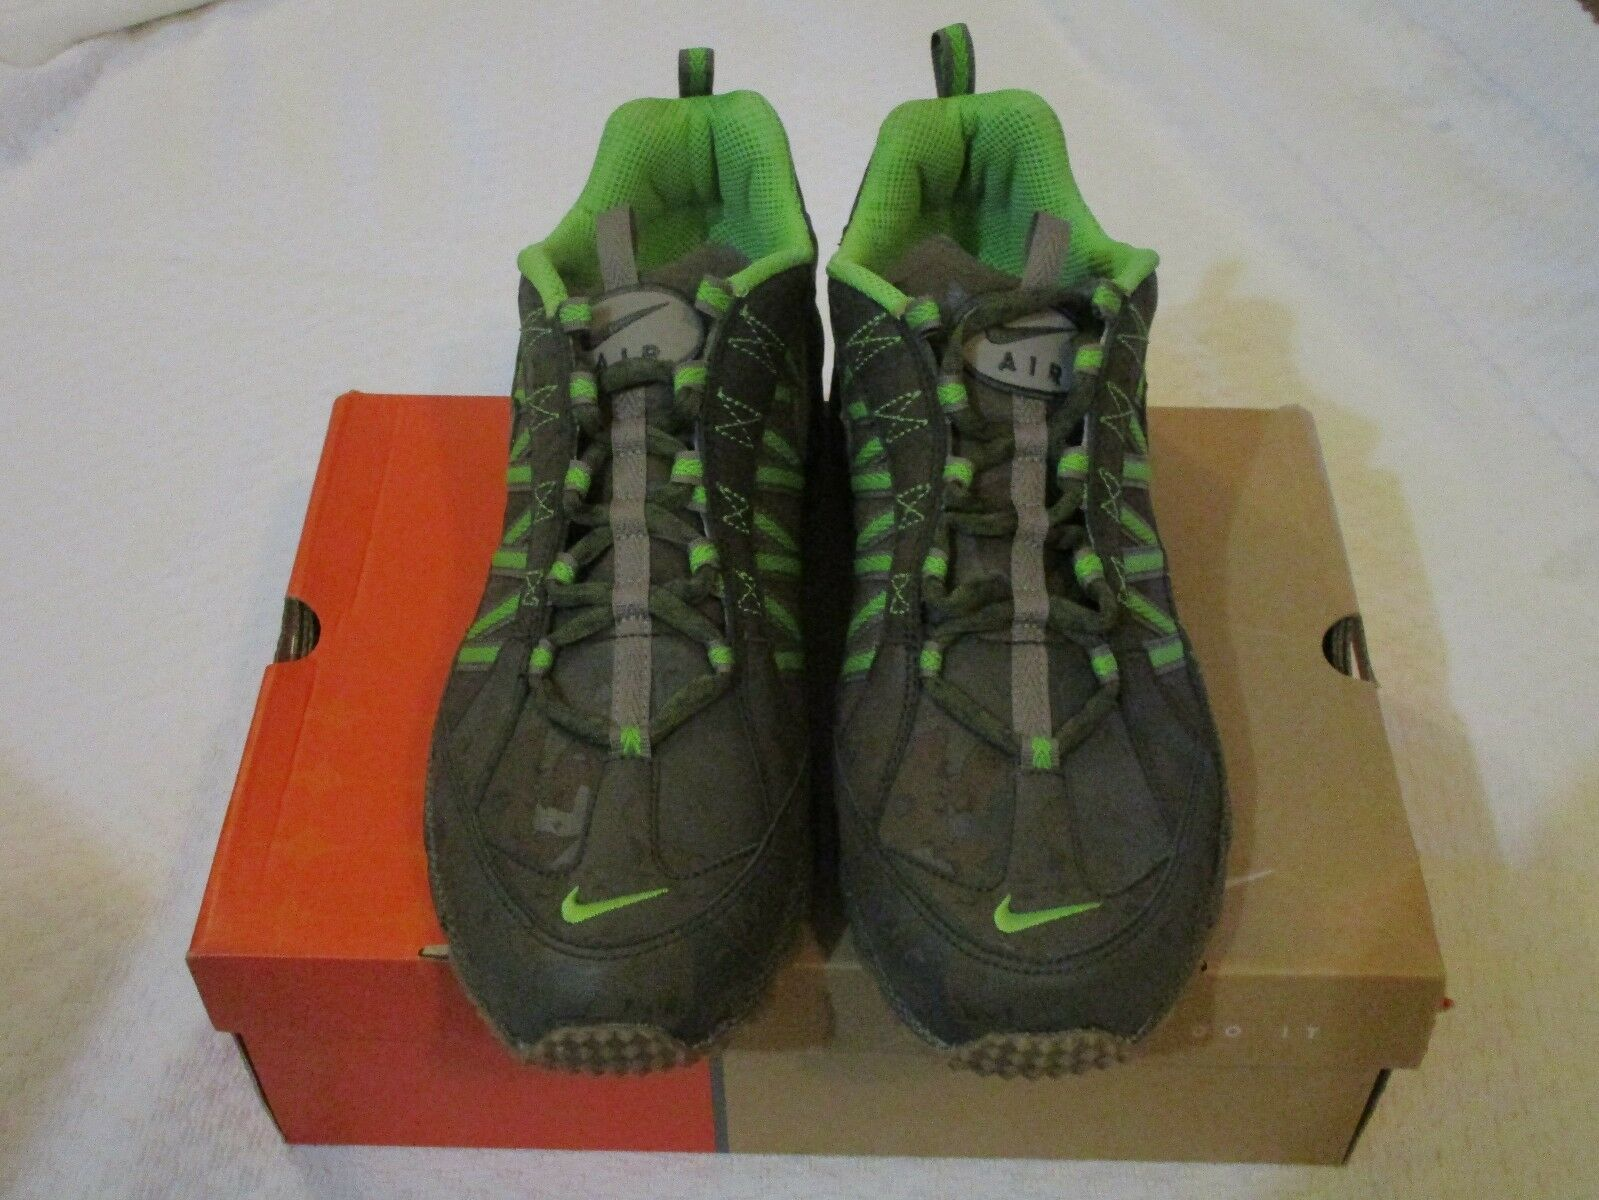 Nike Air Humara Premium Fern Olive Grey Green 314086 302 Size 11.5 Sneakers